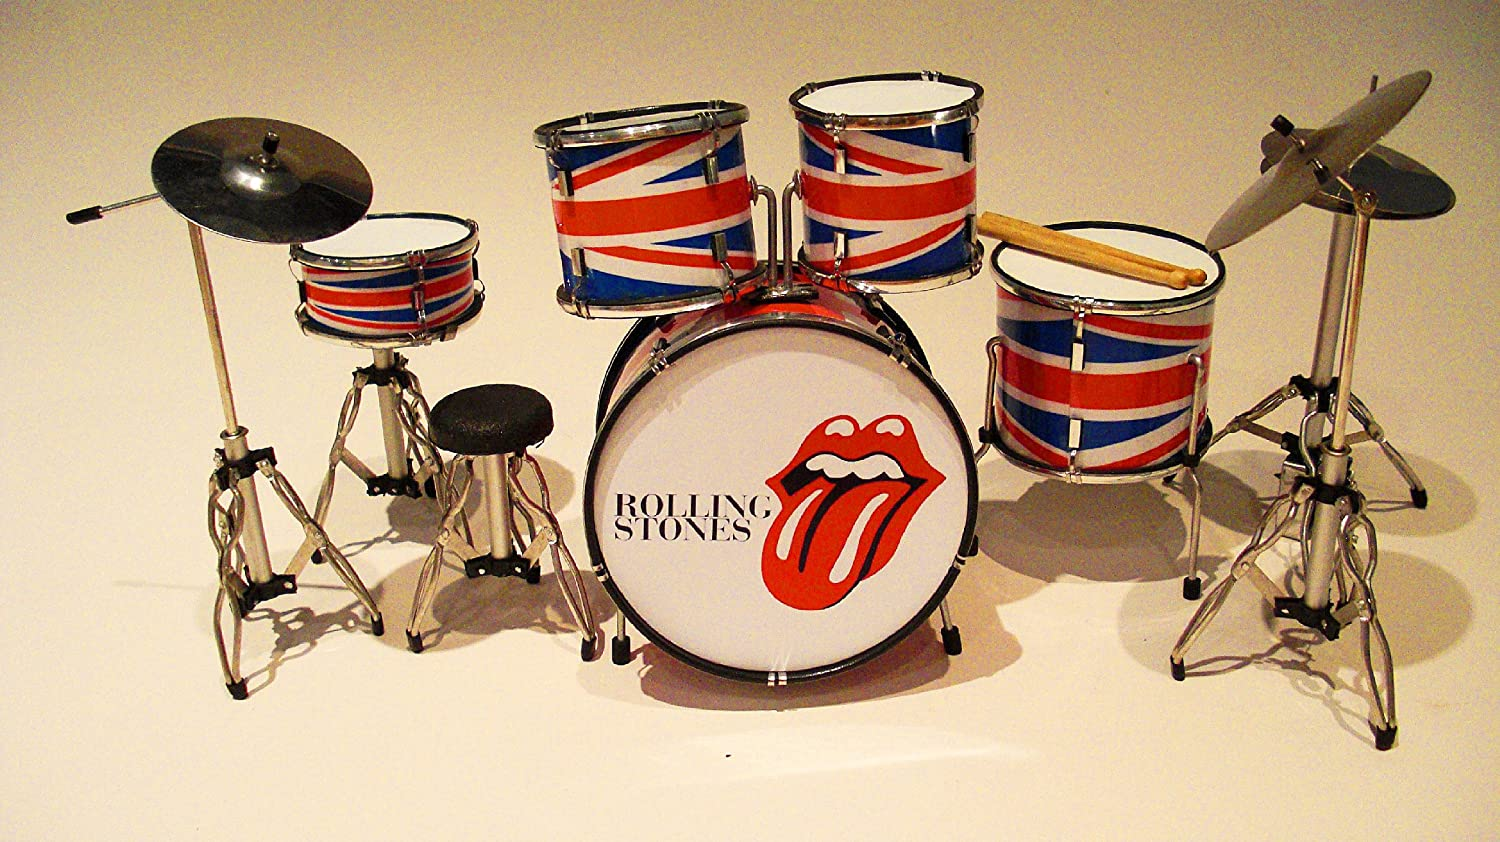 RGM334 Rolling Stones labbra miniature drum kit Rock Guitar Miniatures